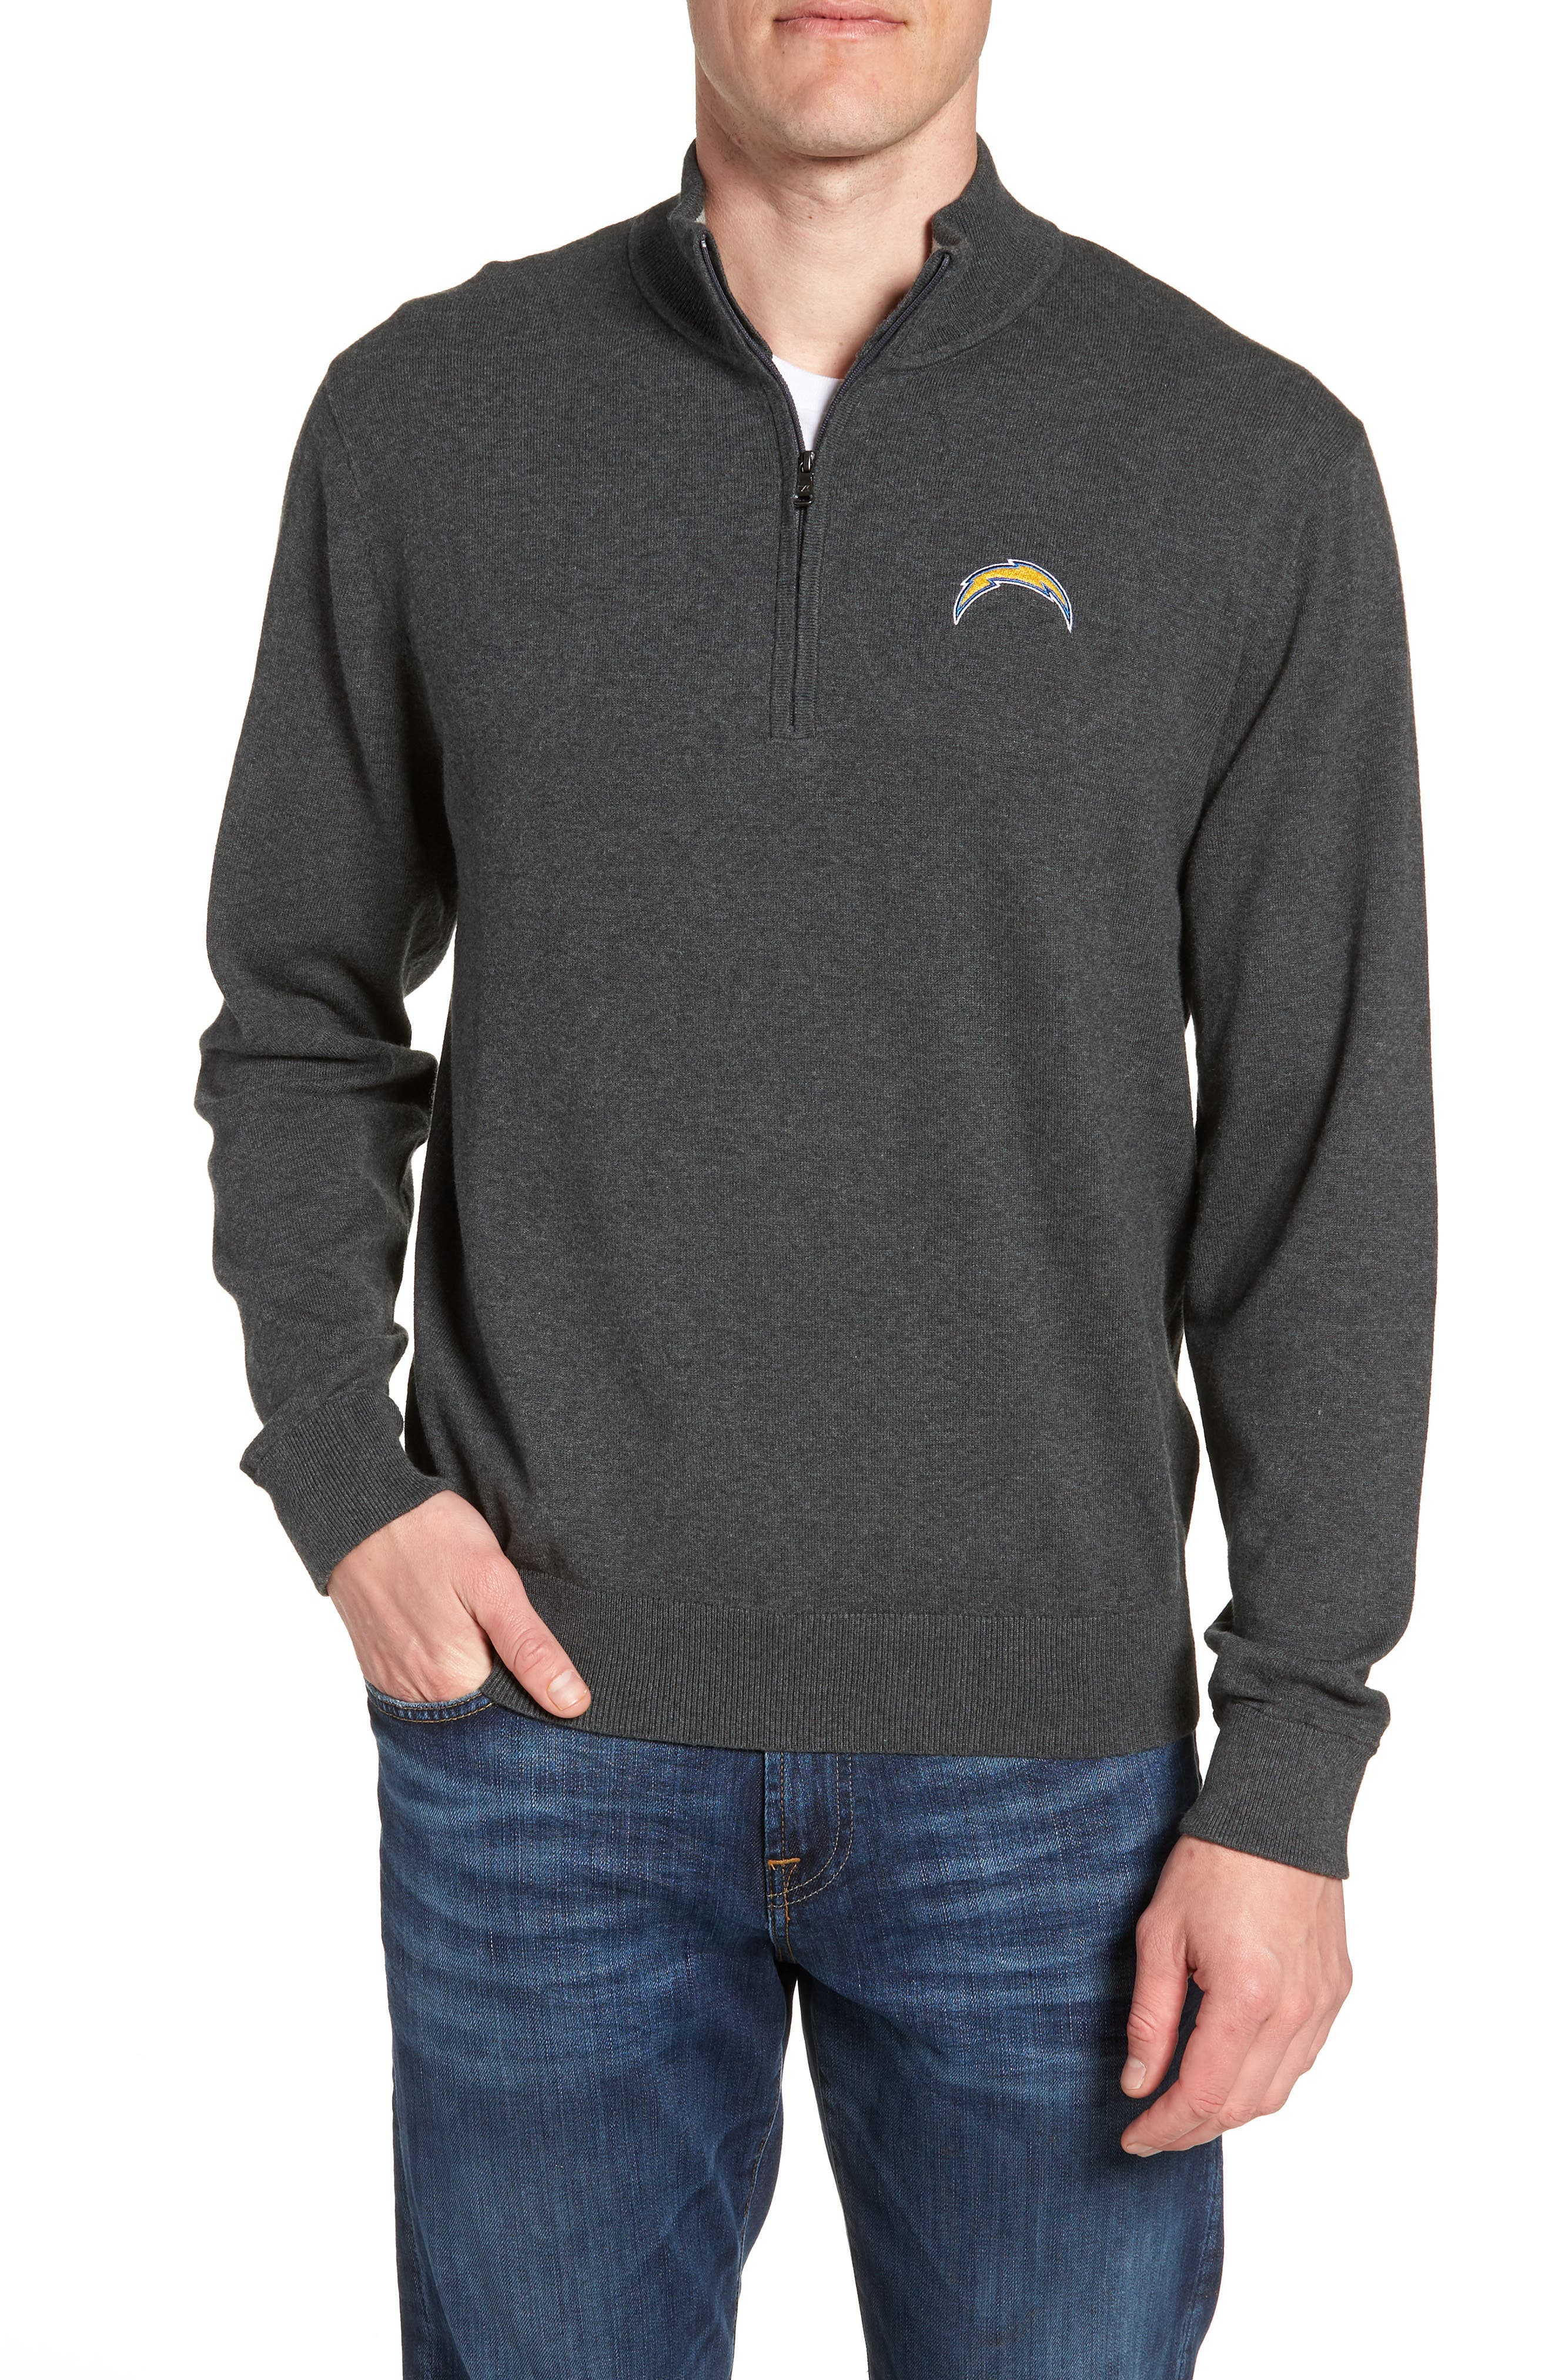 Los Angeles Chargers - Lakemont Regular Fit Quarter Zip Sweater,                         Main,                         color, CHARCOAL HEATHER